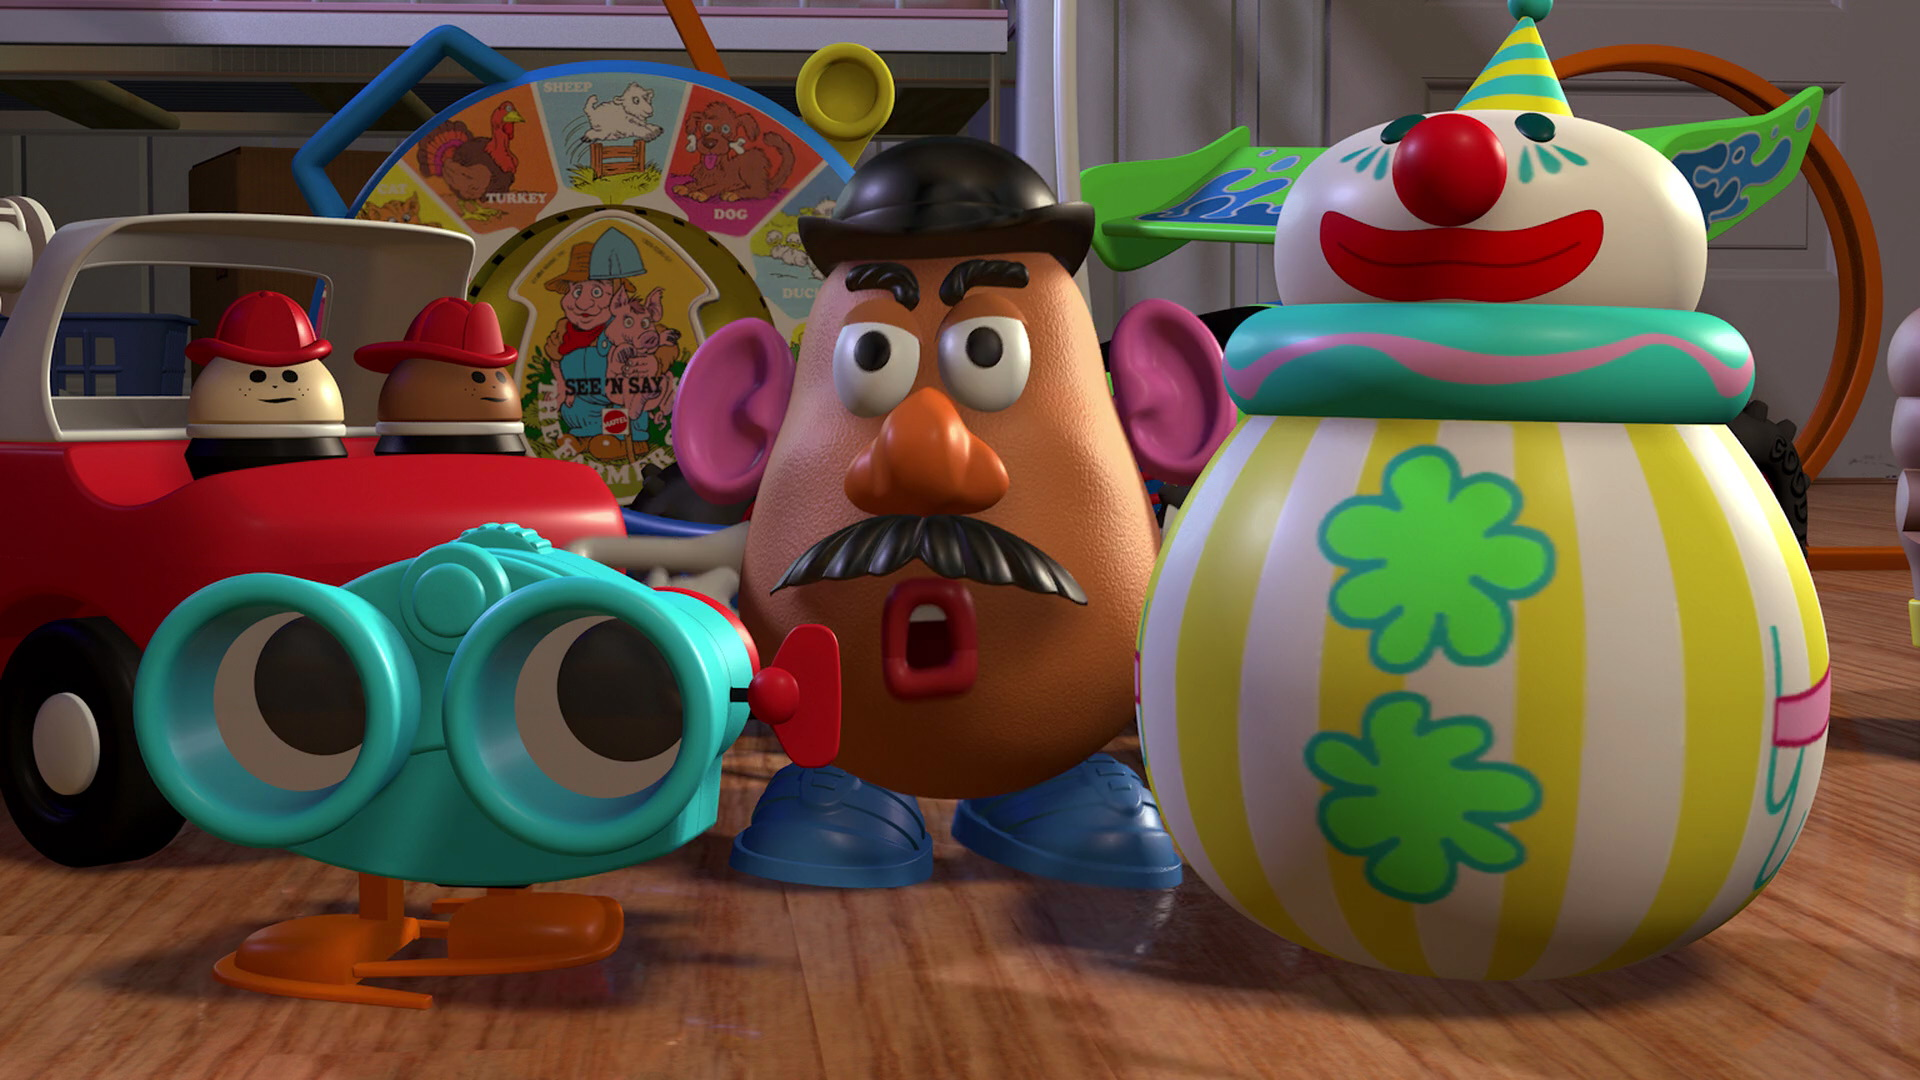 roly-poly-clown-personnage-toy-story-01